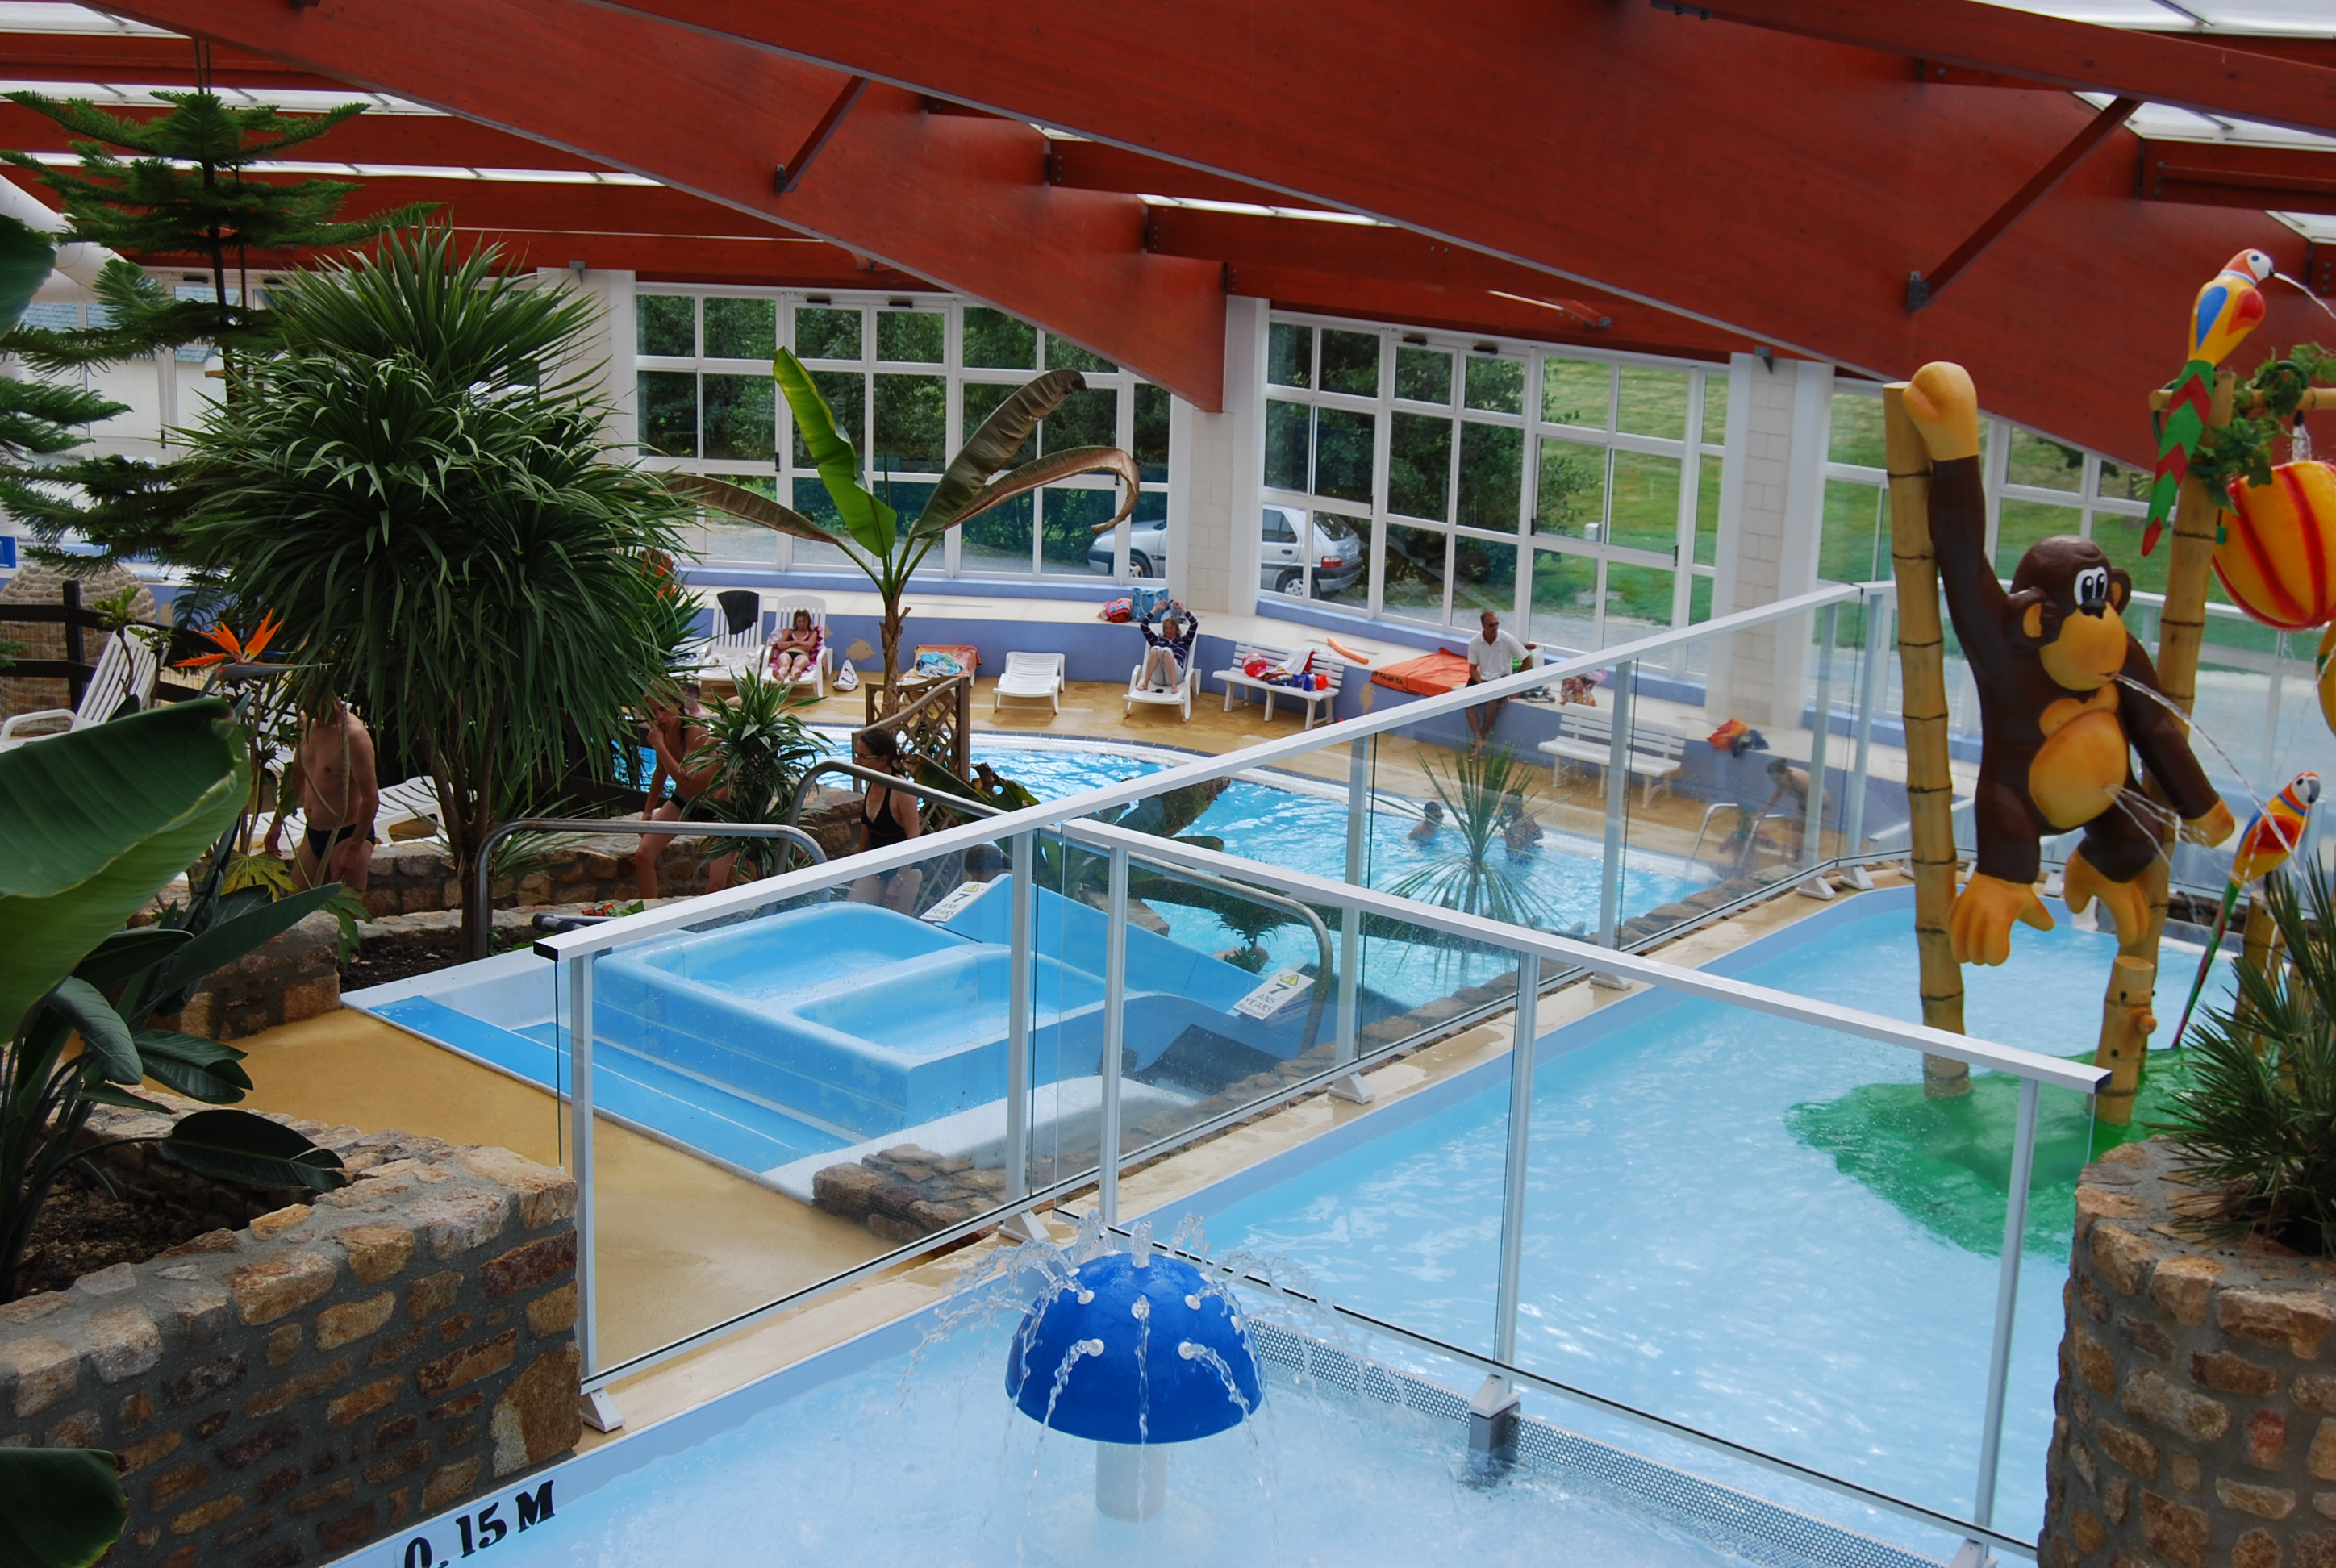 Camping avec piscine couverte en normandie camping en for Camping normandie piscine couverte